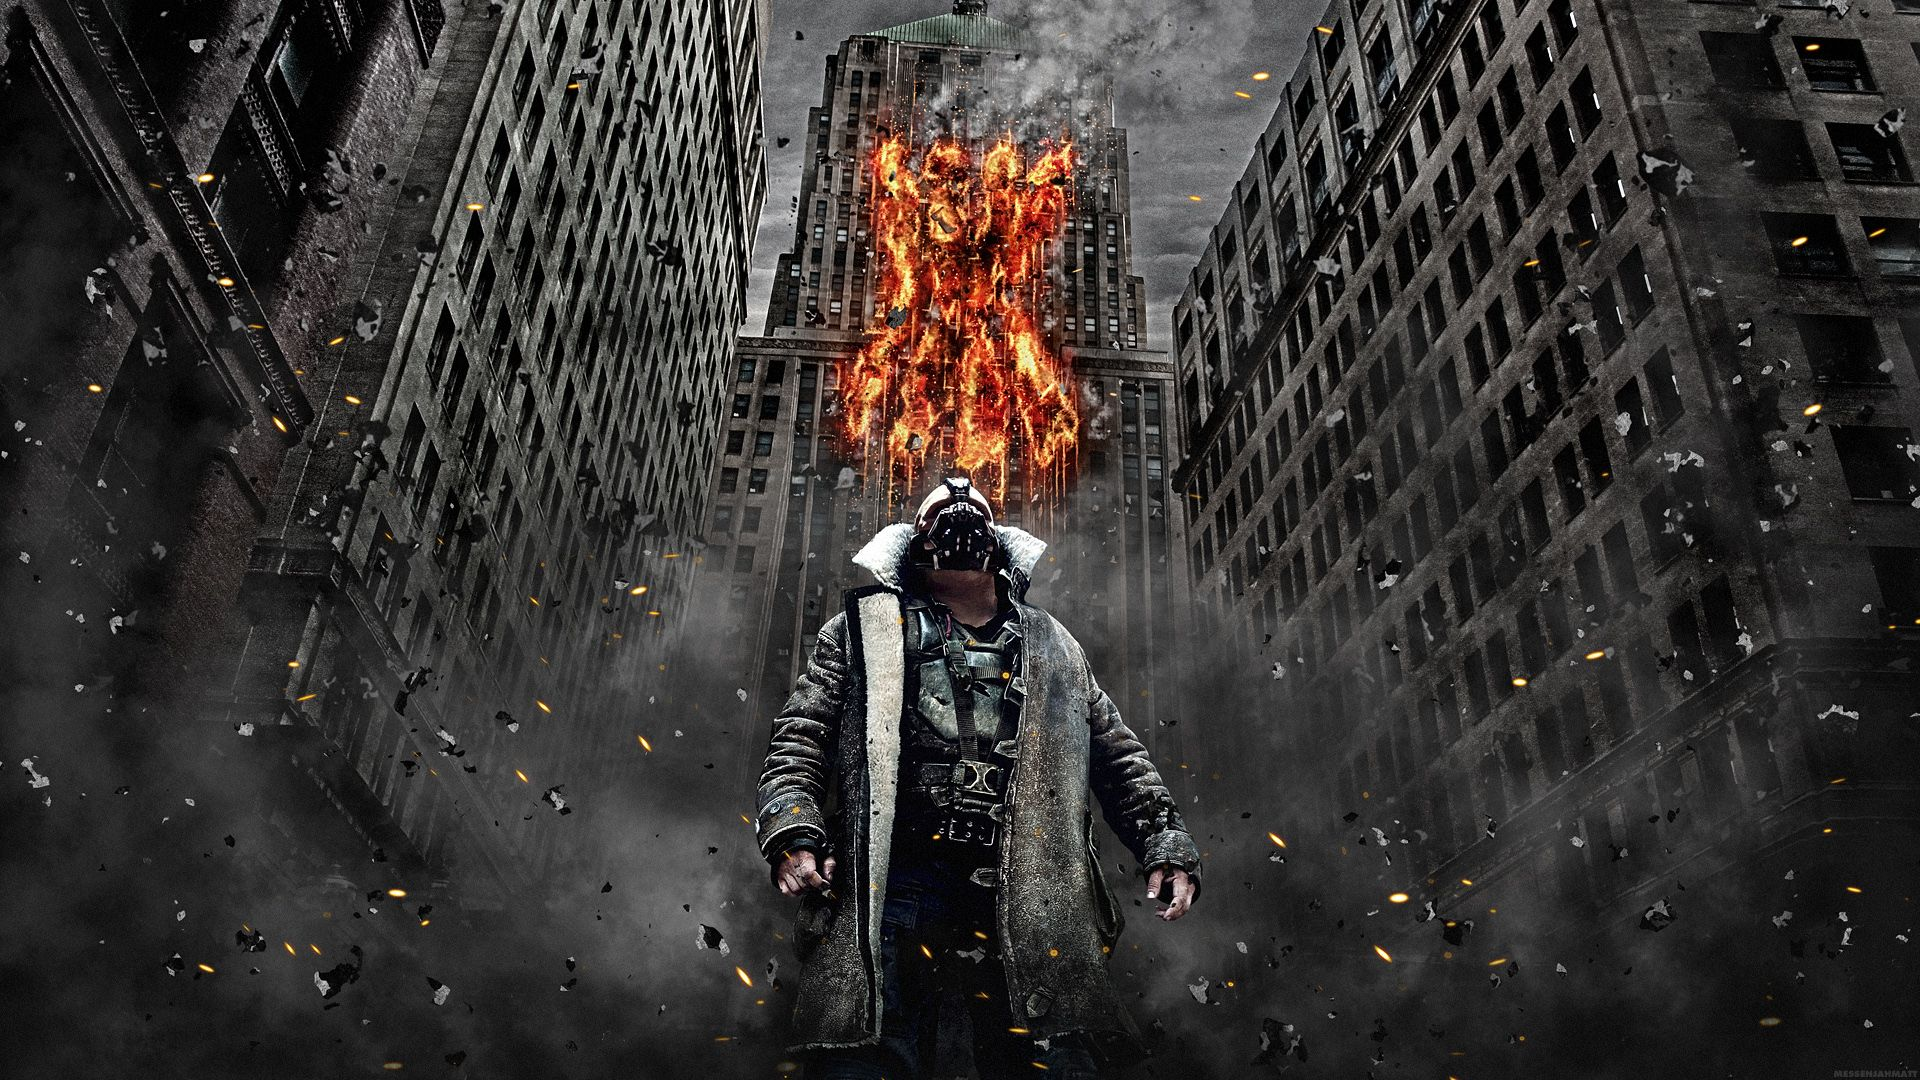 Bane Wallpapers Hd Wallpapers Backgrounds Images Art Photos Dark Knight Wallpaper The Dark Knight Rises Bane